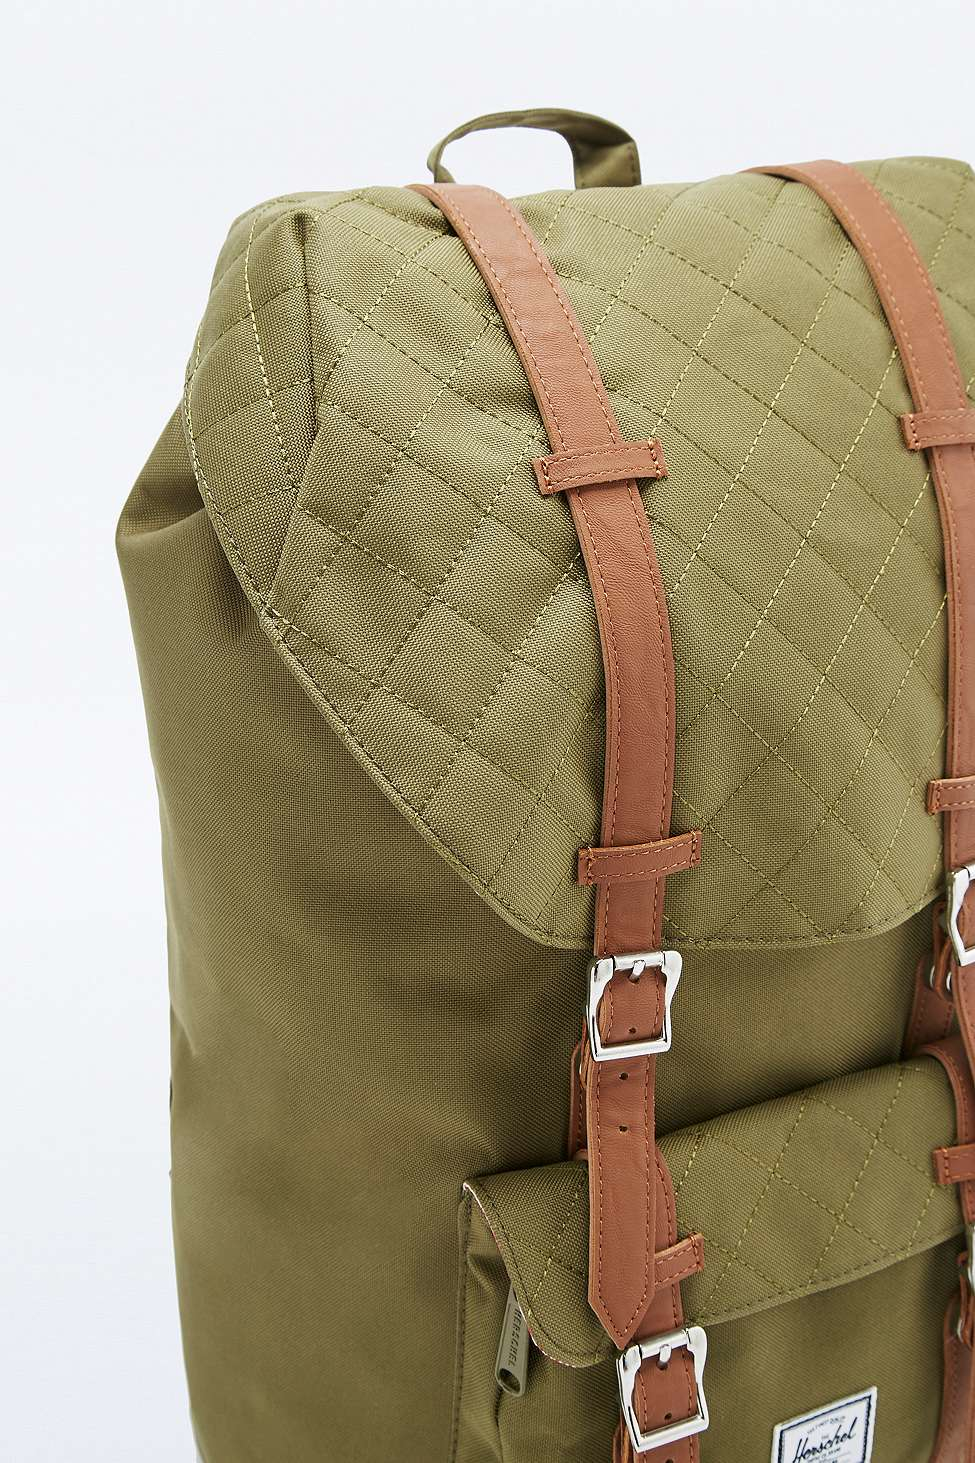 a11c5837dc629 Herschel Supply Co. Little America Quilted Army Backpack in Green ...